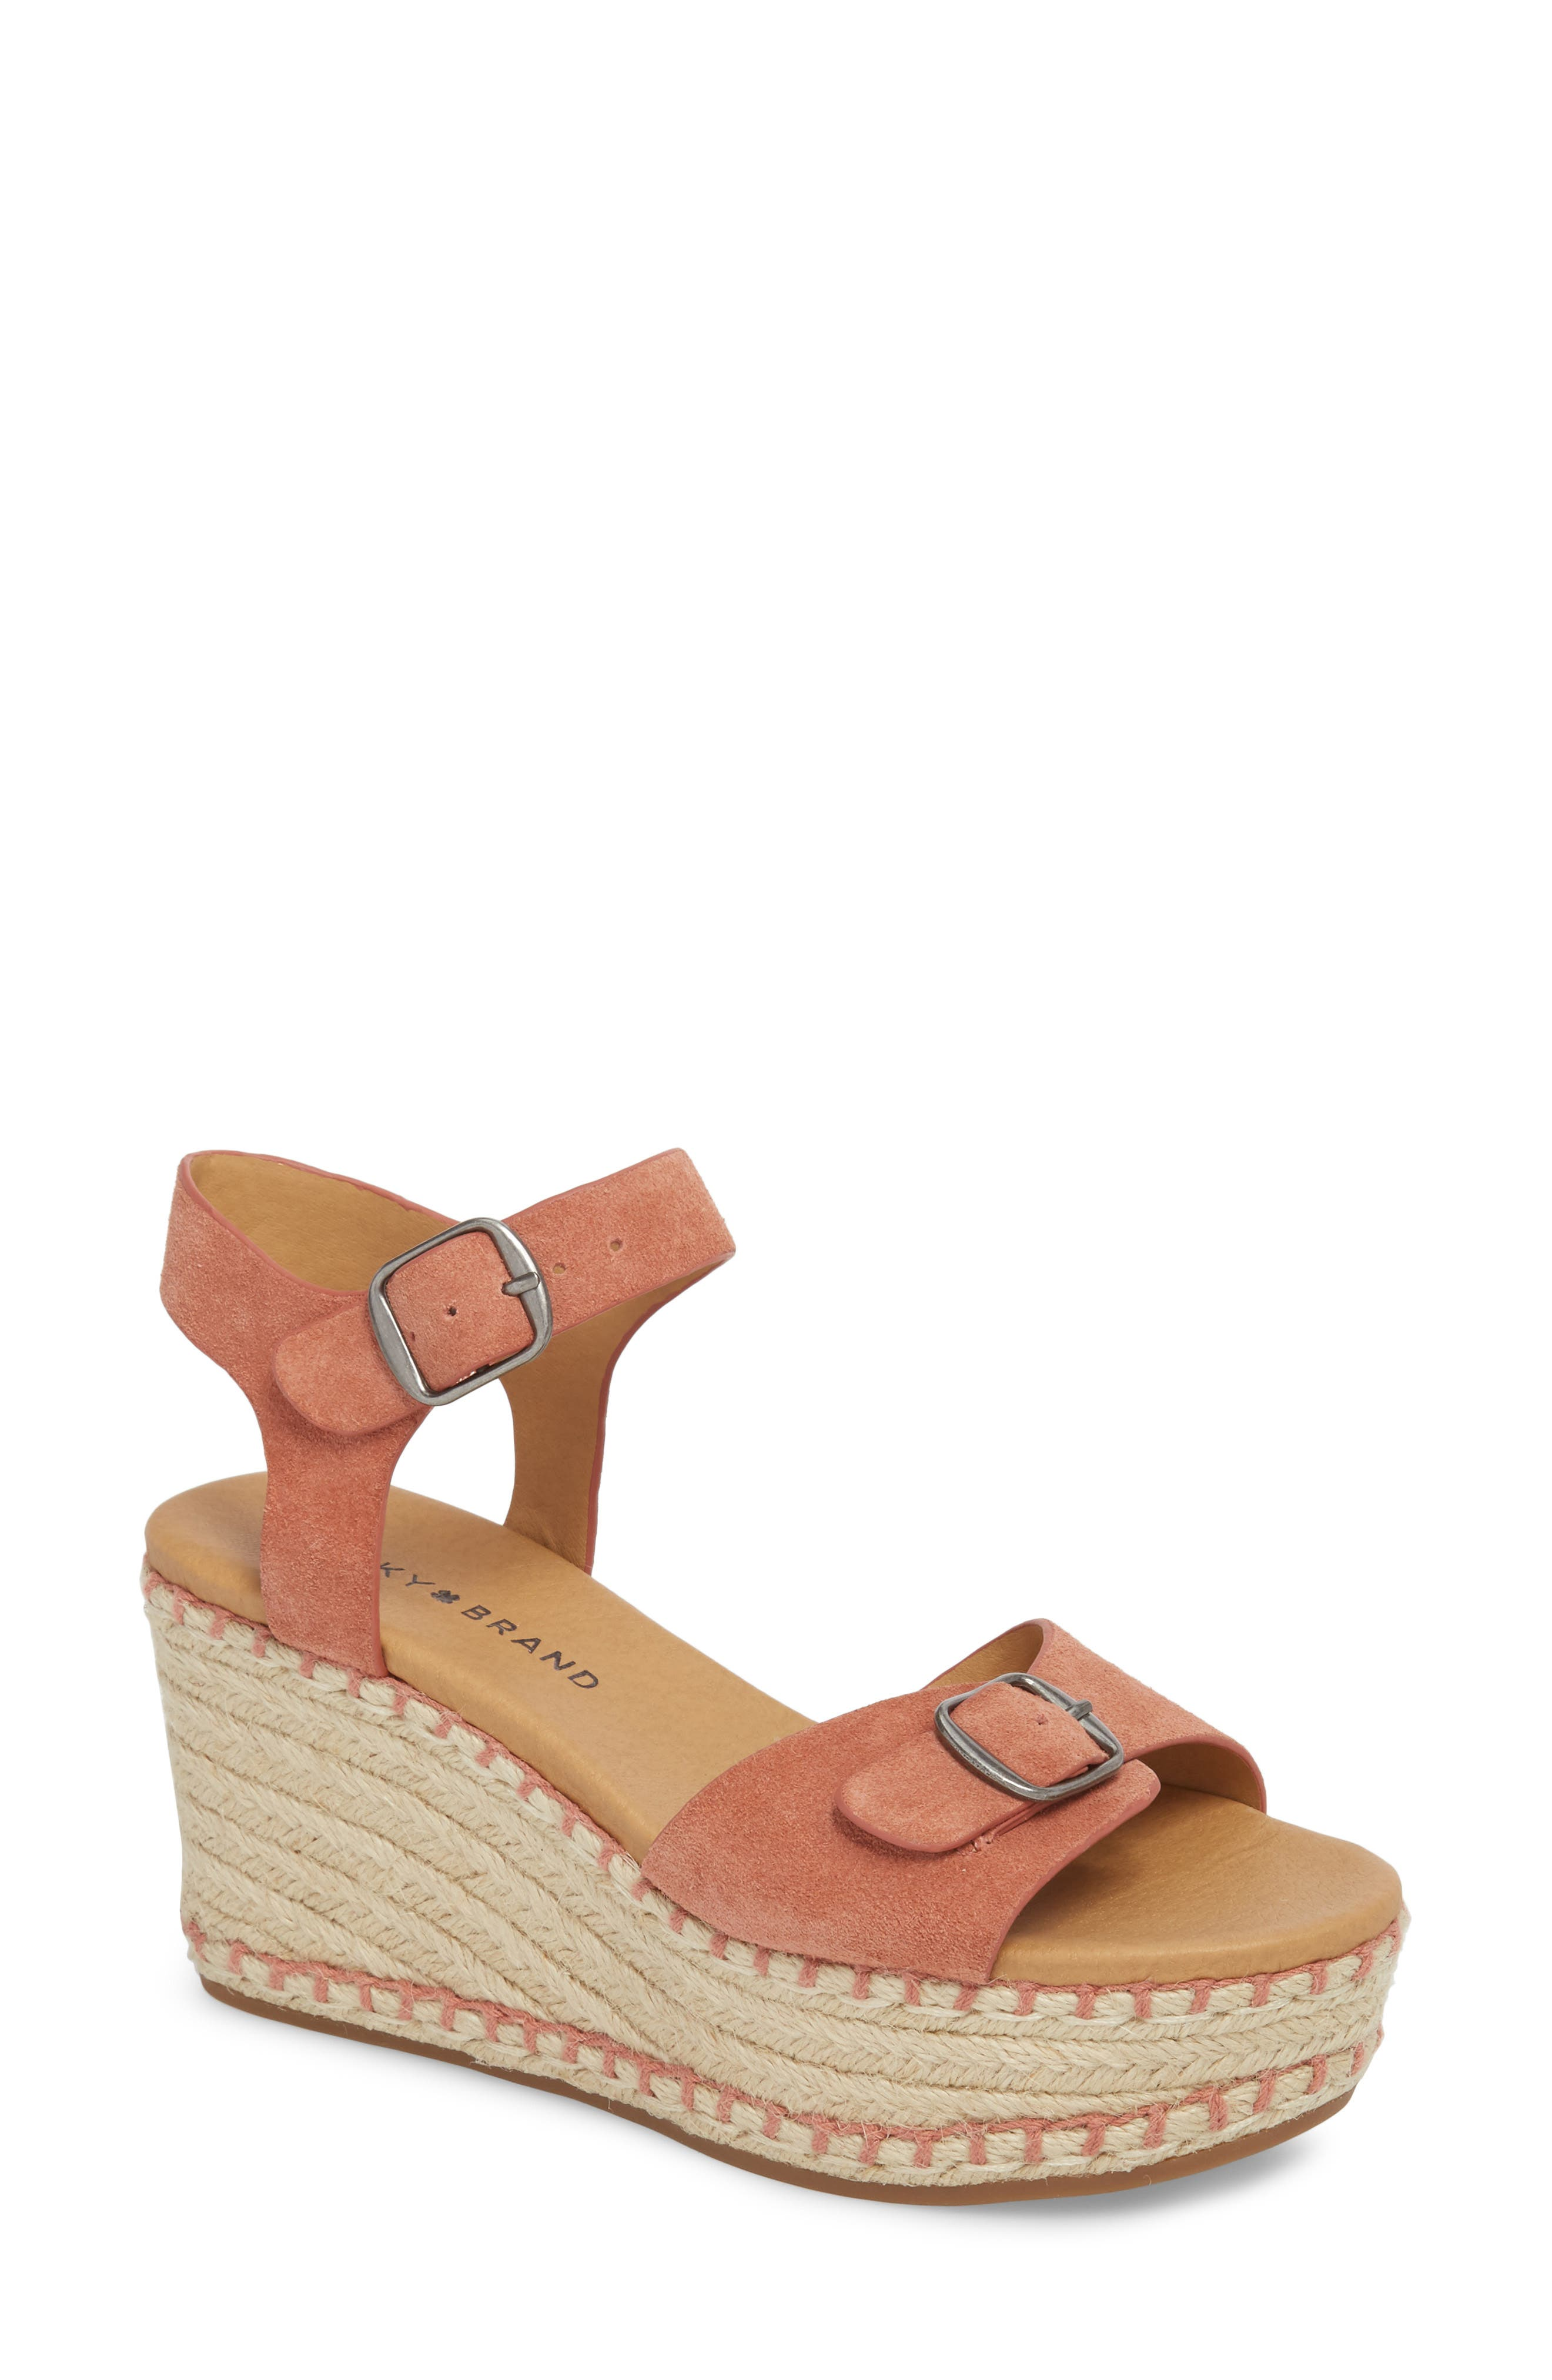 Naveah III Espadrille Wedge Sandal,                             Main thumbnail 1, color,                             Canyon Rose Suede